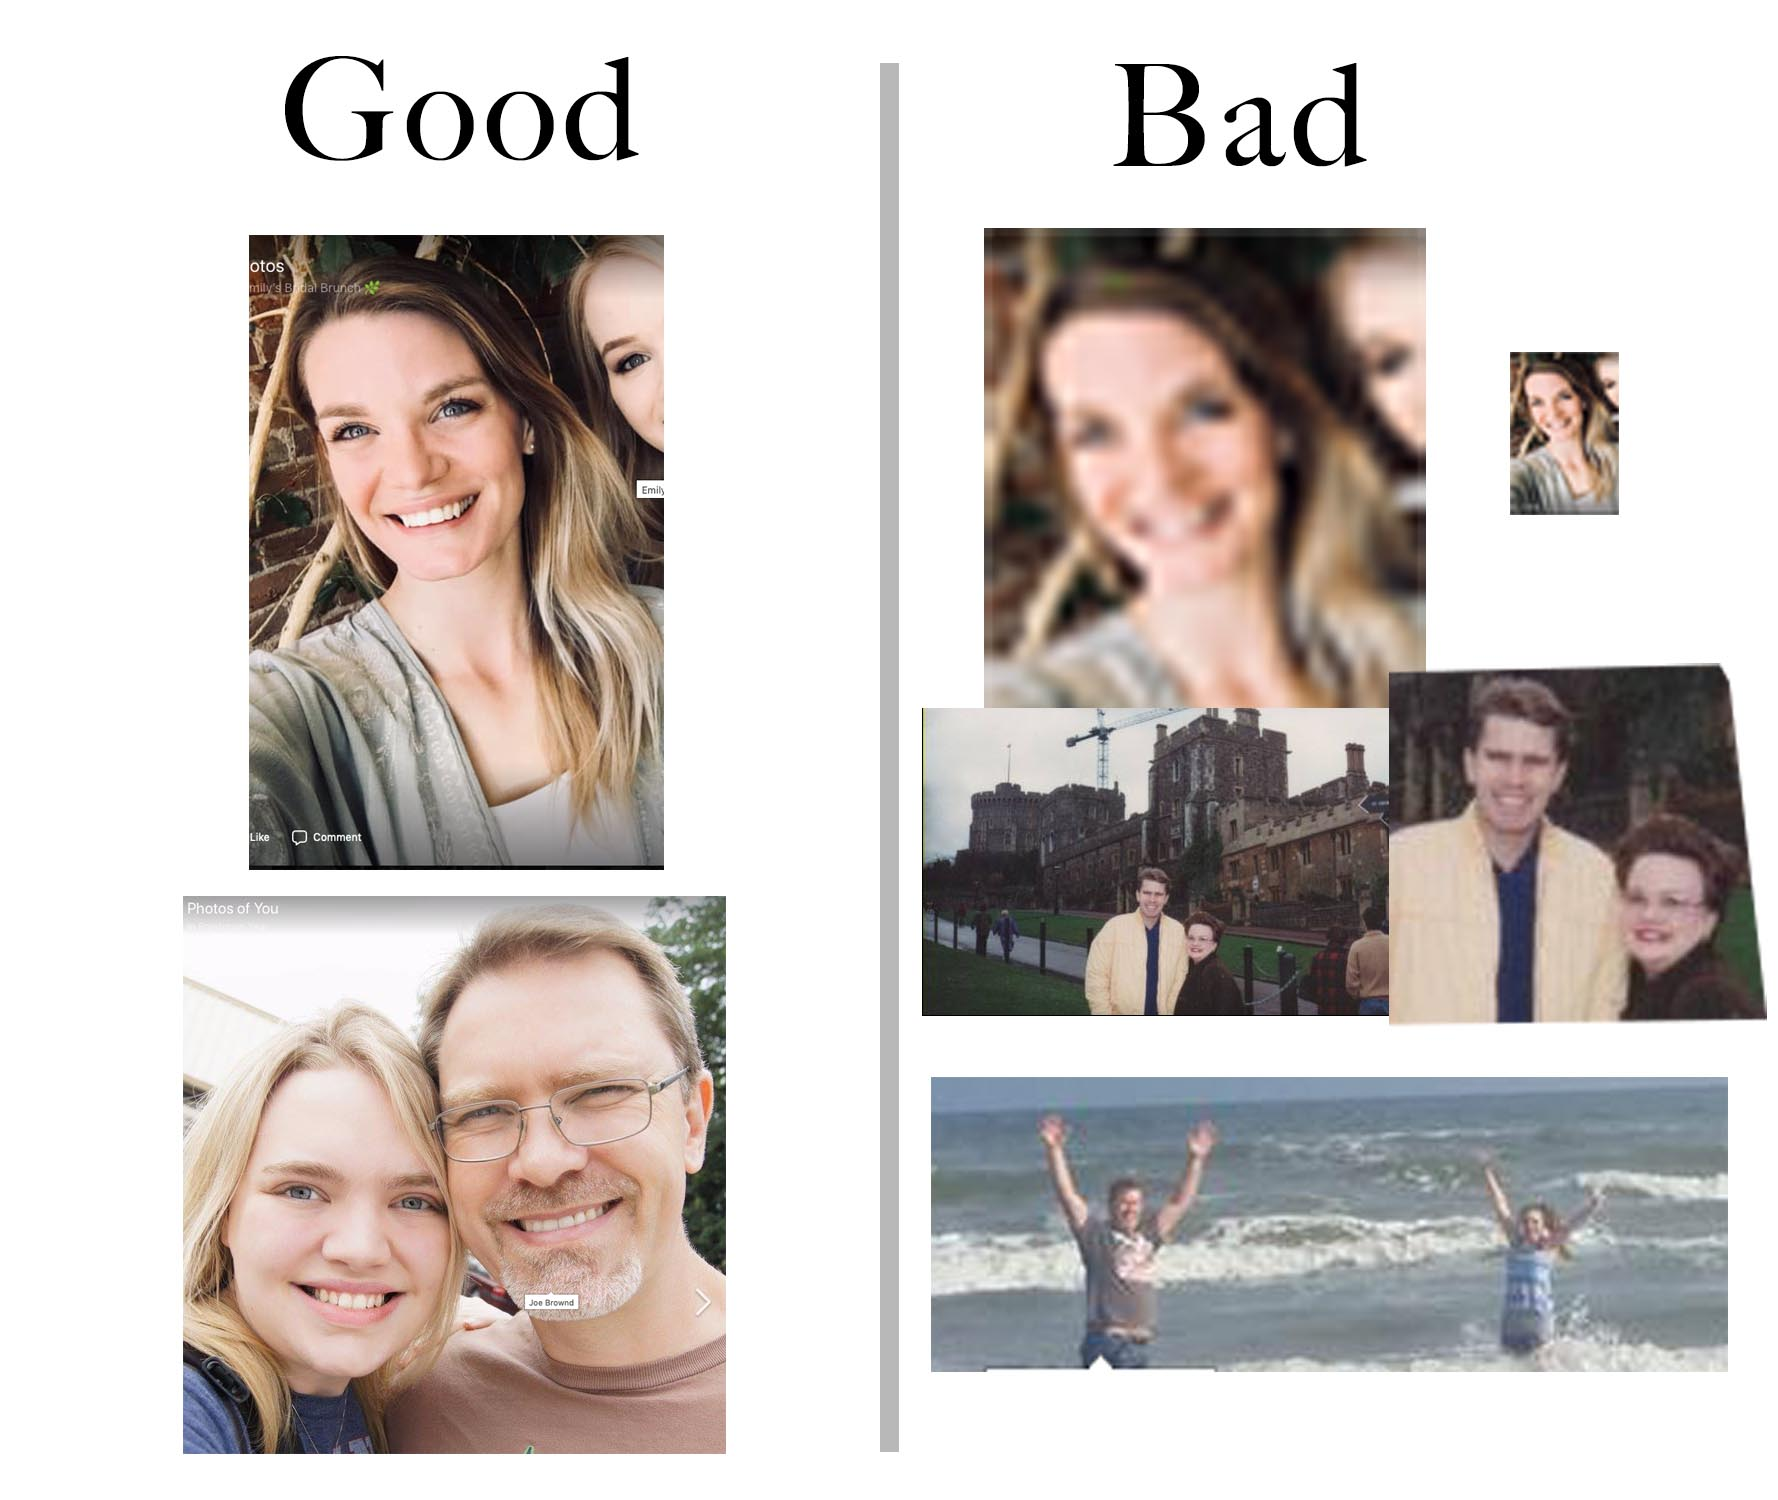 Good vs Bad Quality